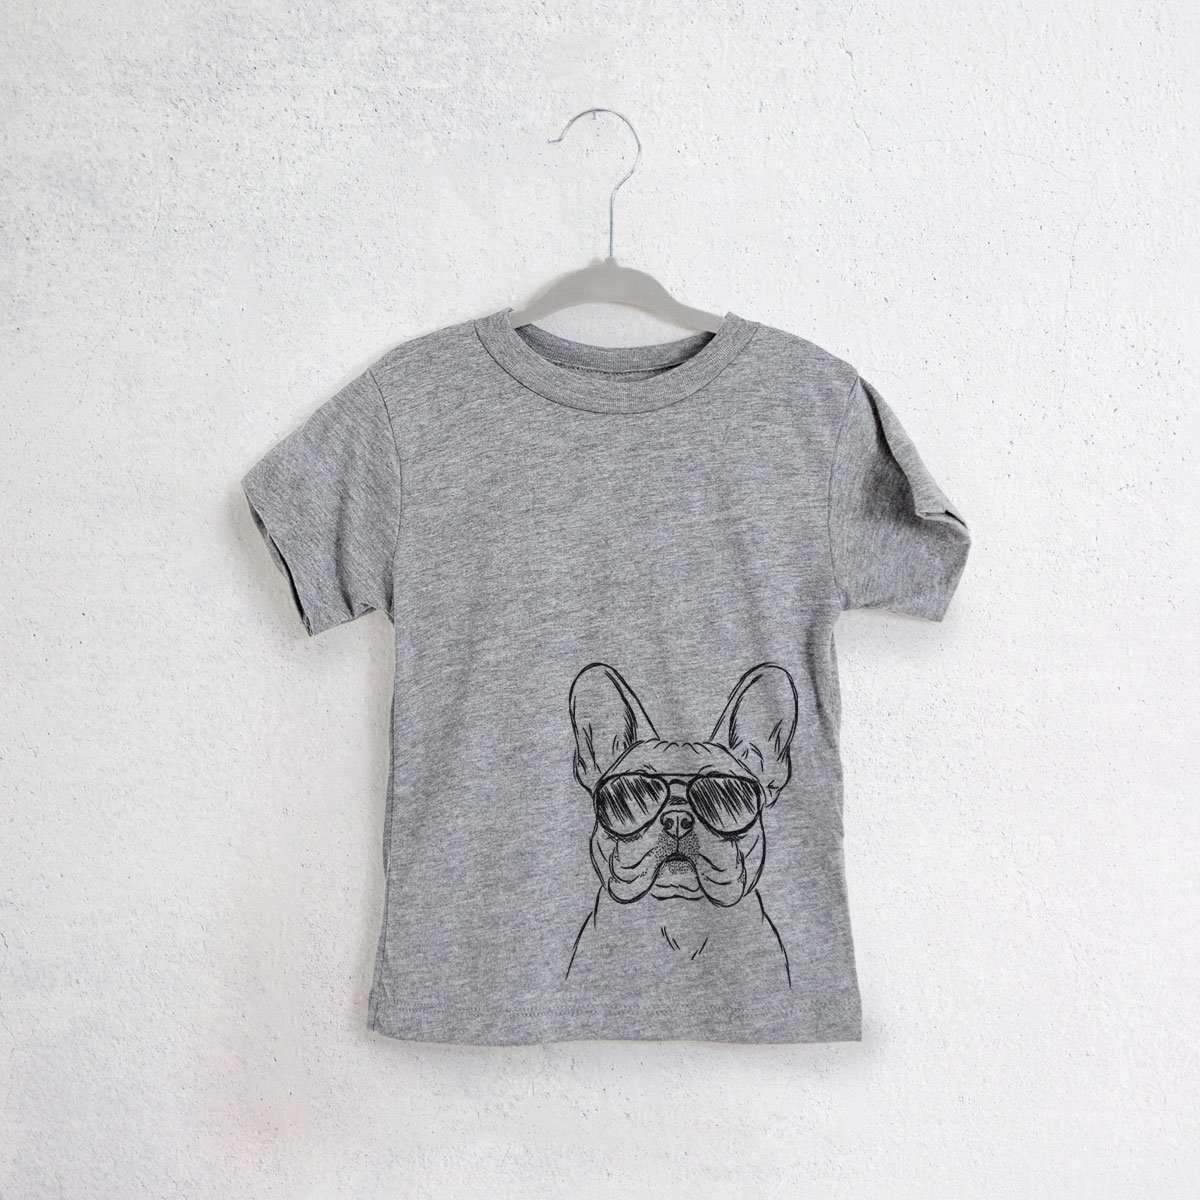 Franco the French Bulldog - Kids/Youth/Toddler Shirt